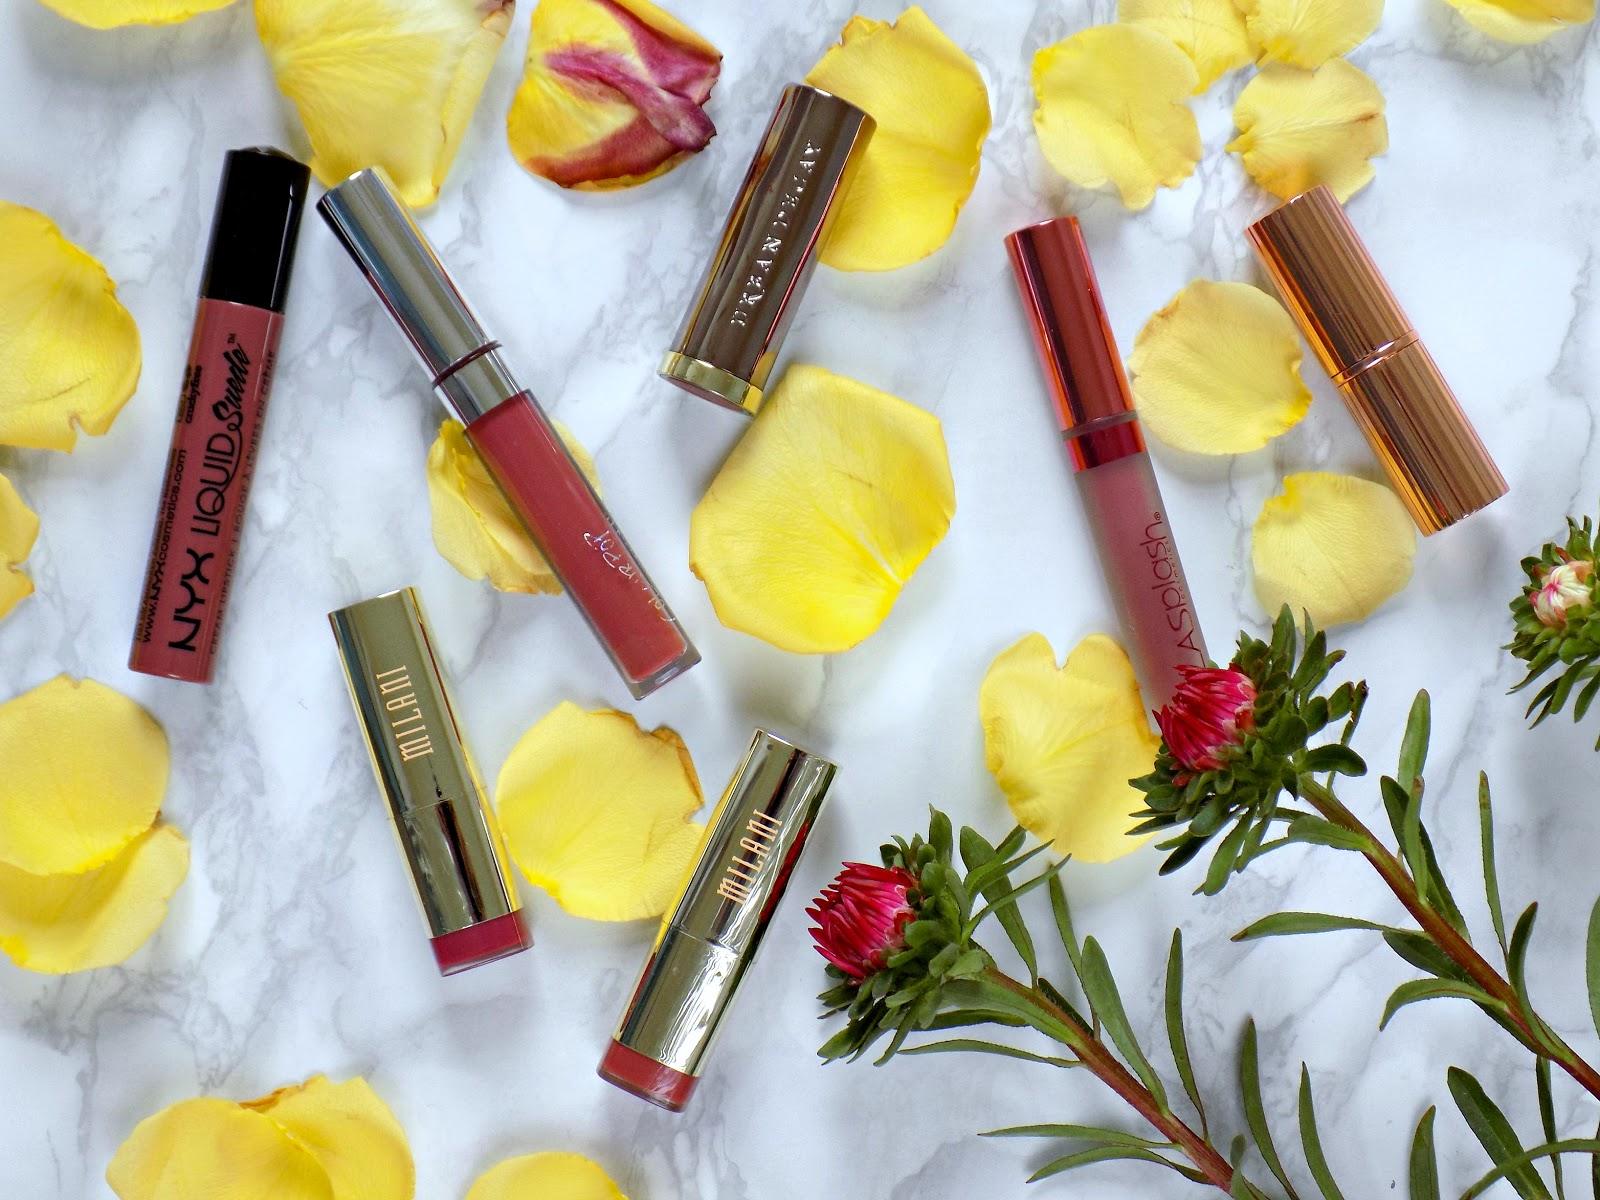 Summer to Autumn transitional lipsticks